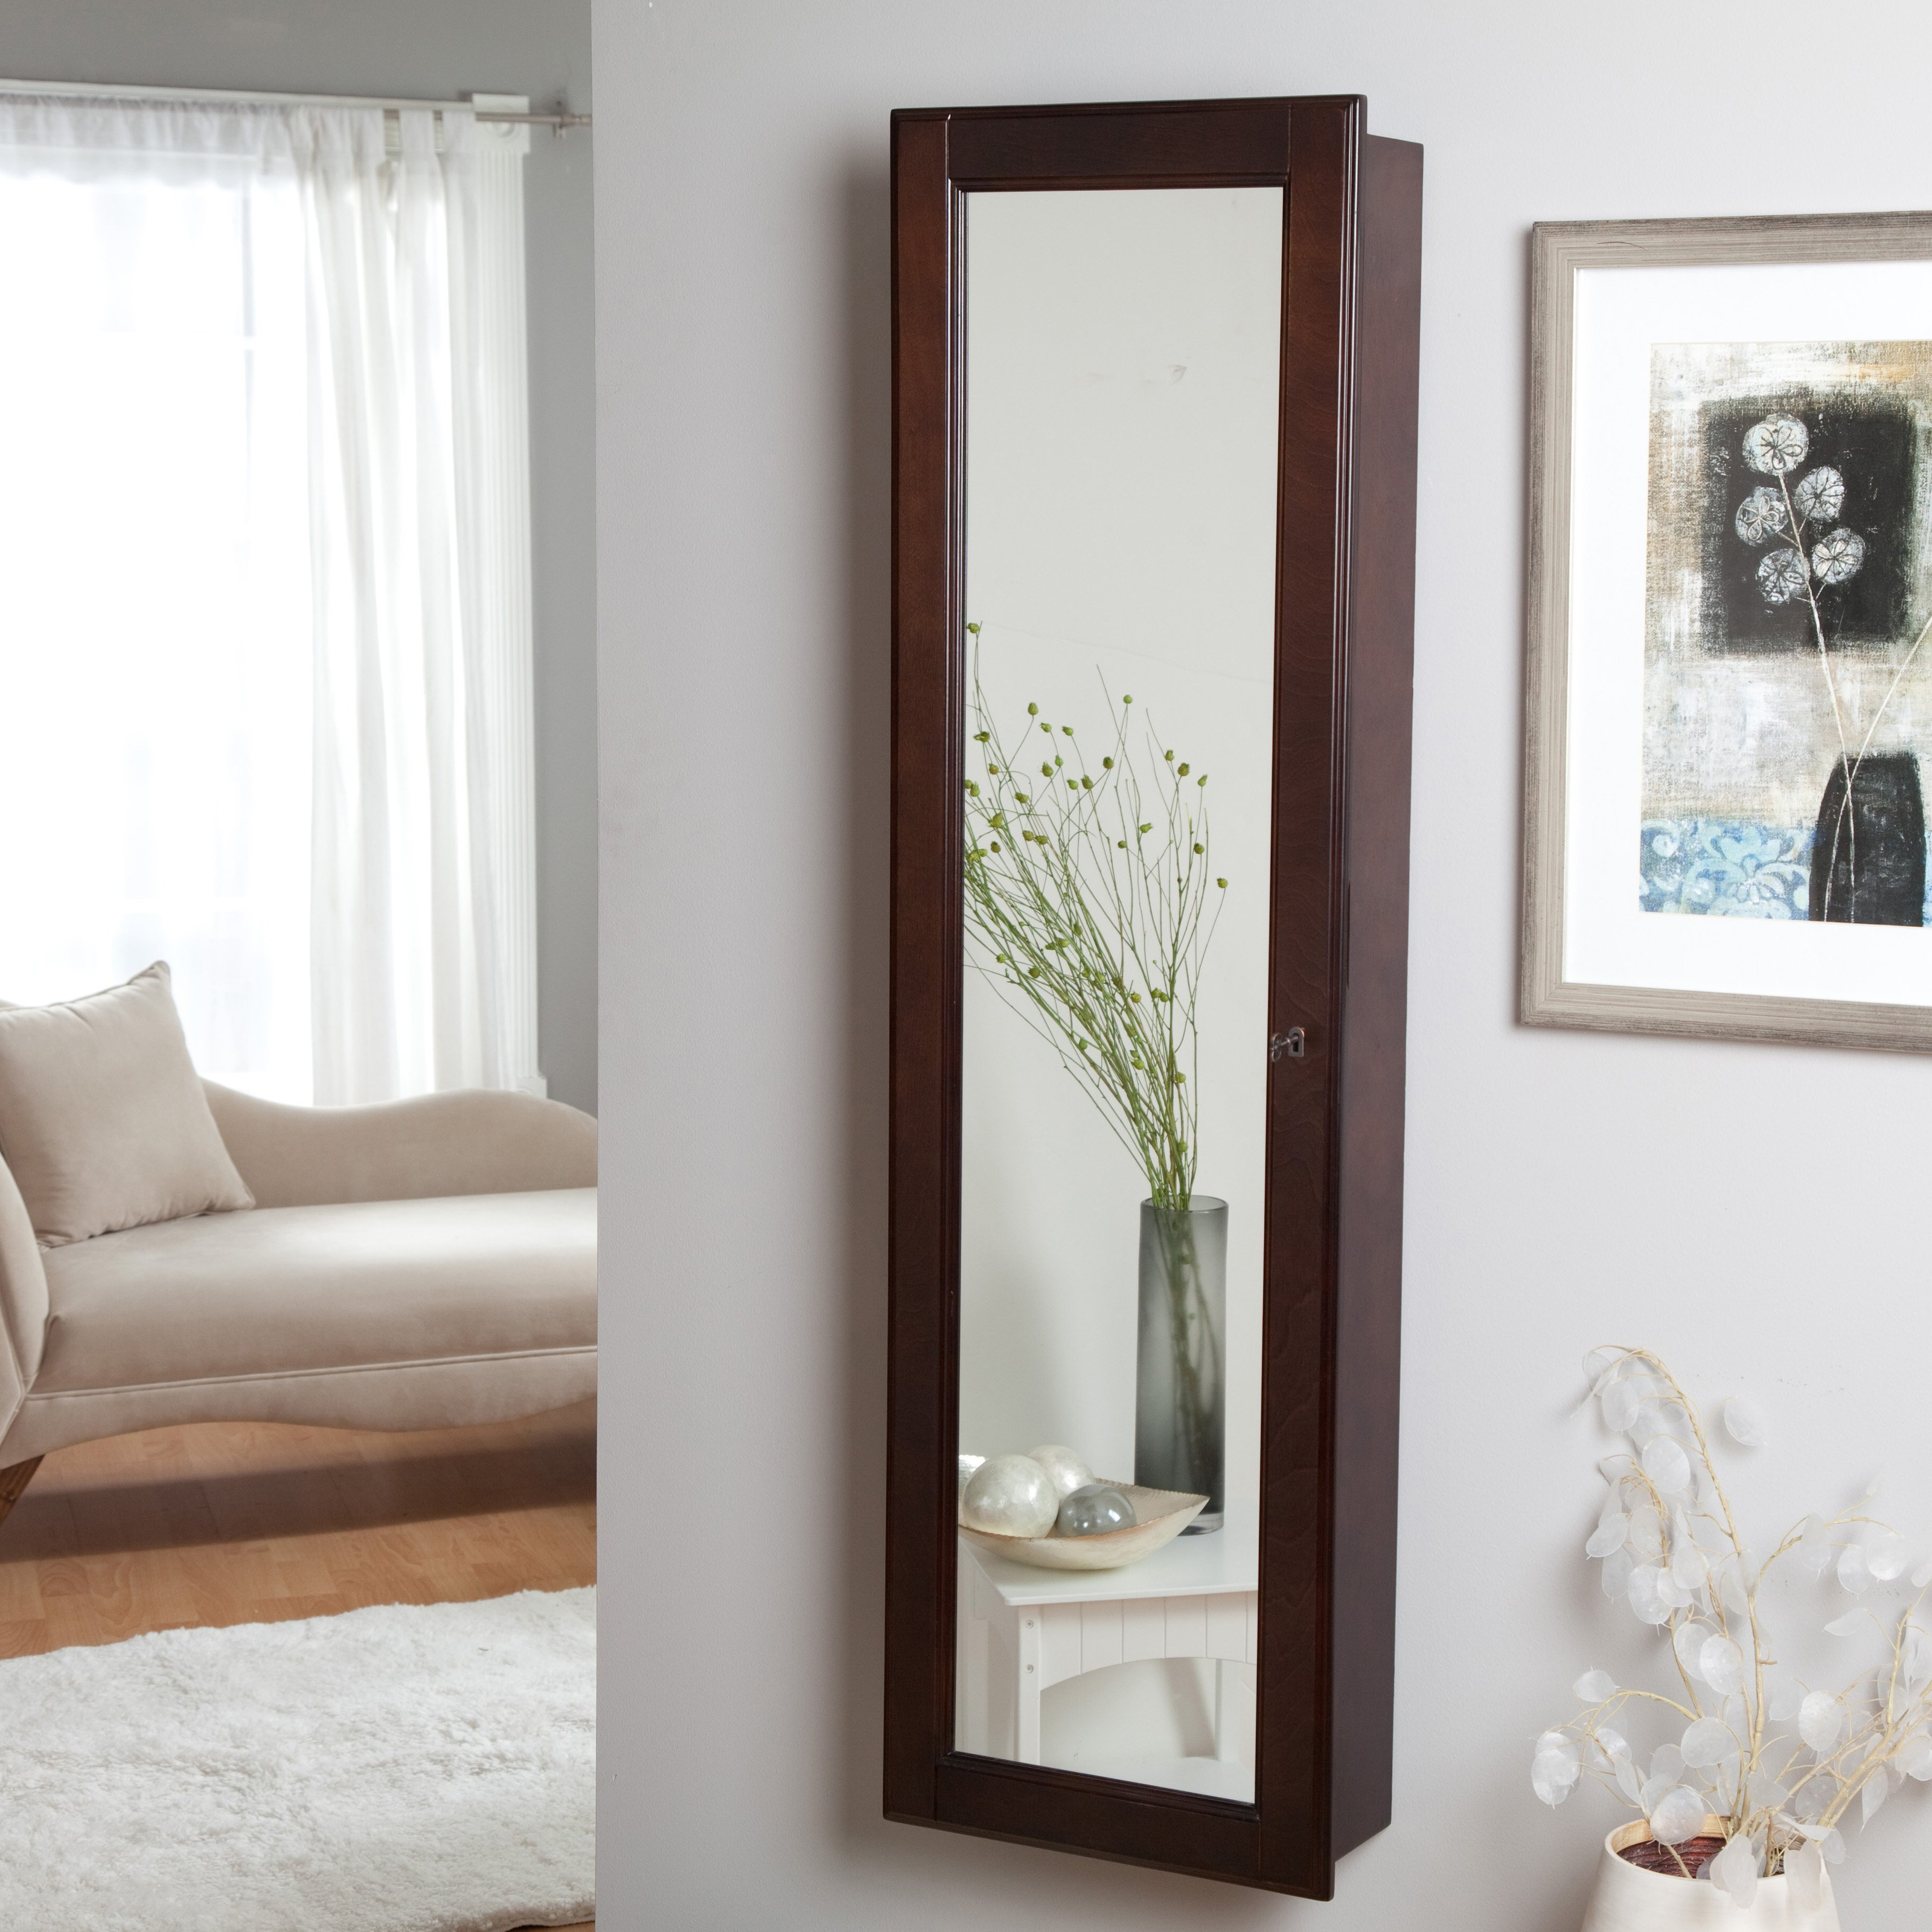 Charming Wooden Standing Mirror Jewelry Armoire In Brown Without Stand On White Wall Matched With Wooden Floor For Living Room Decor Ideas